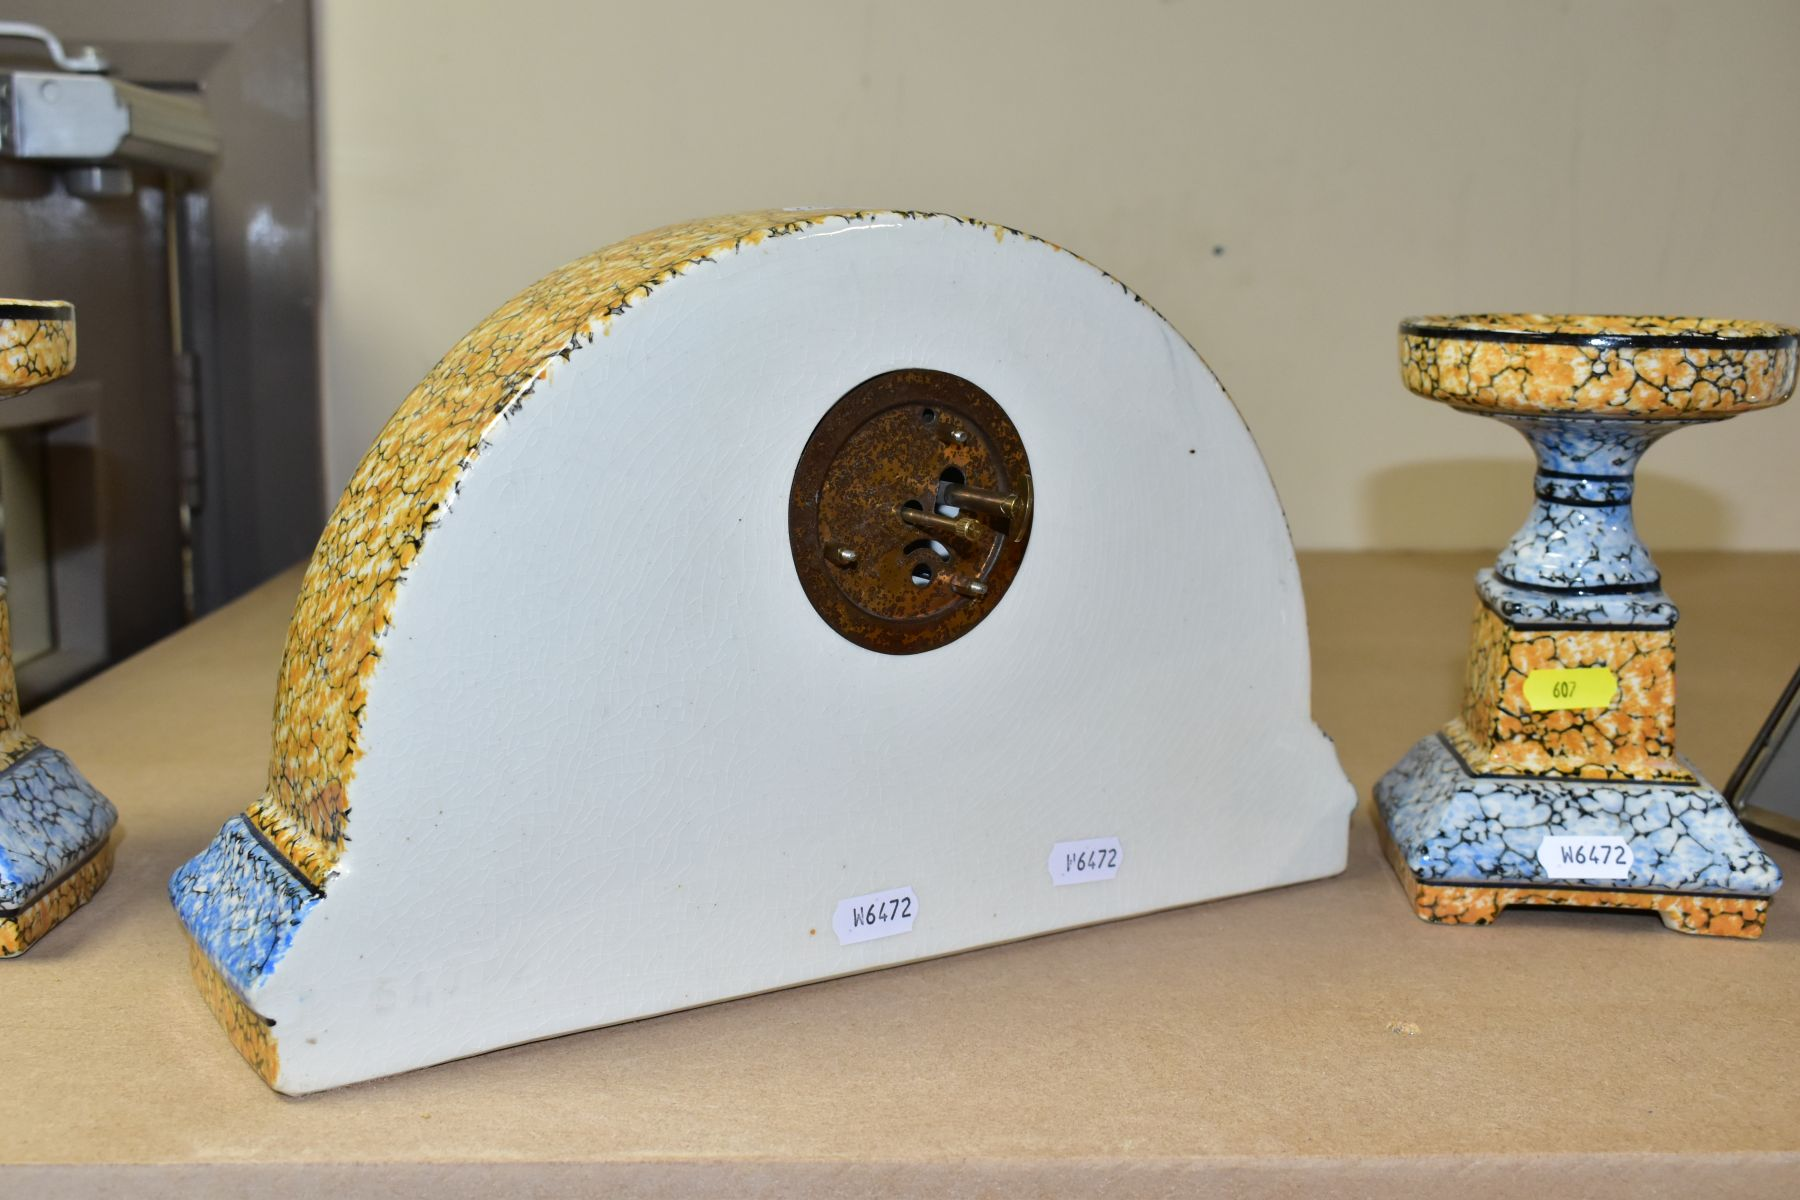 A CONTINENTAL CLOCK GARNITURE, the dome shaped porcelain clock is branded M.W inside a triangle, - Image 6 of 6